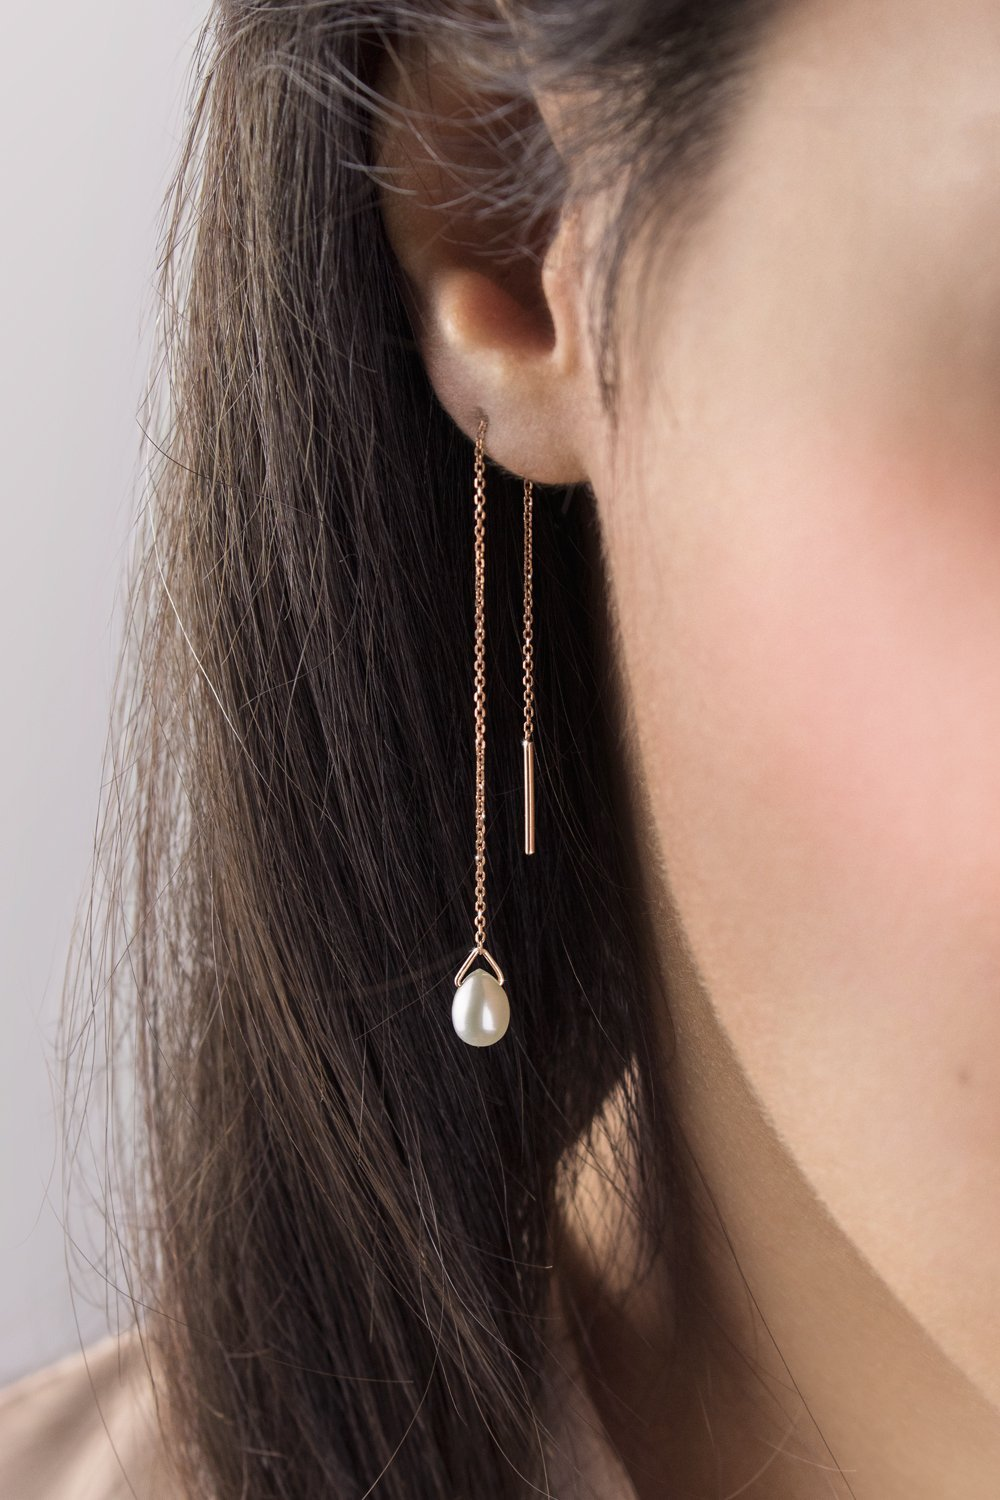 Pearl Threader Earrings, 9K, 14K, 18K Gold Earrings, Rose Gold Threaders, Gold Chain Earrings, June Birthstone, White Pearl Birthstone Earrings